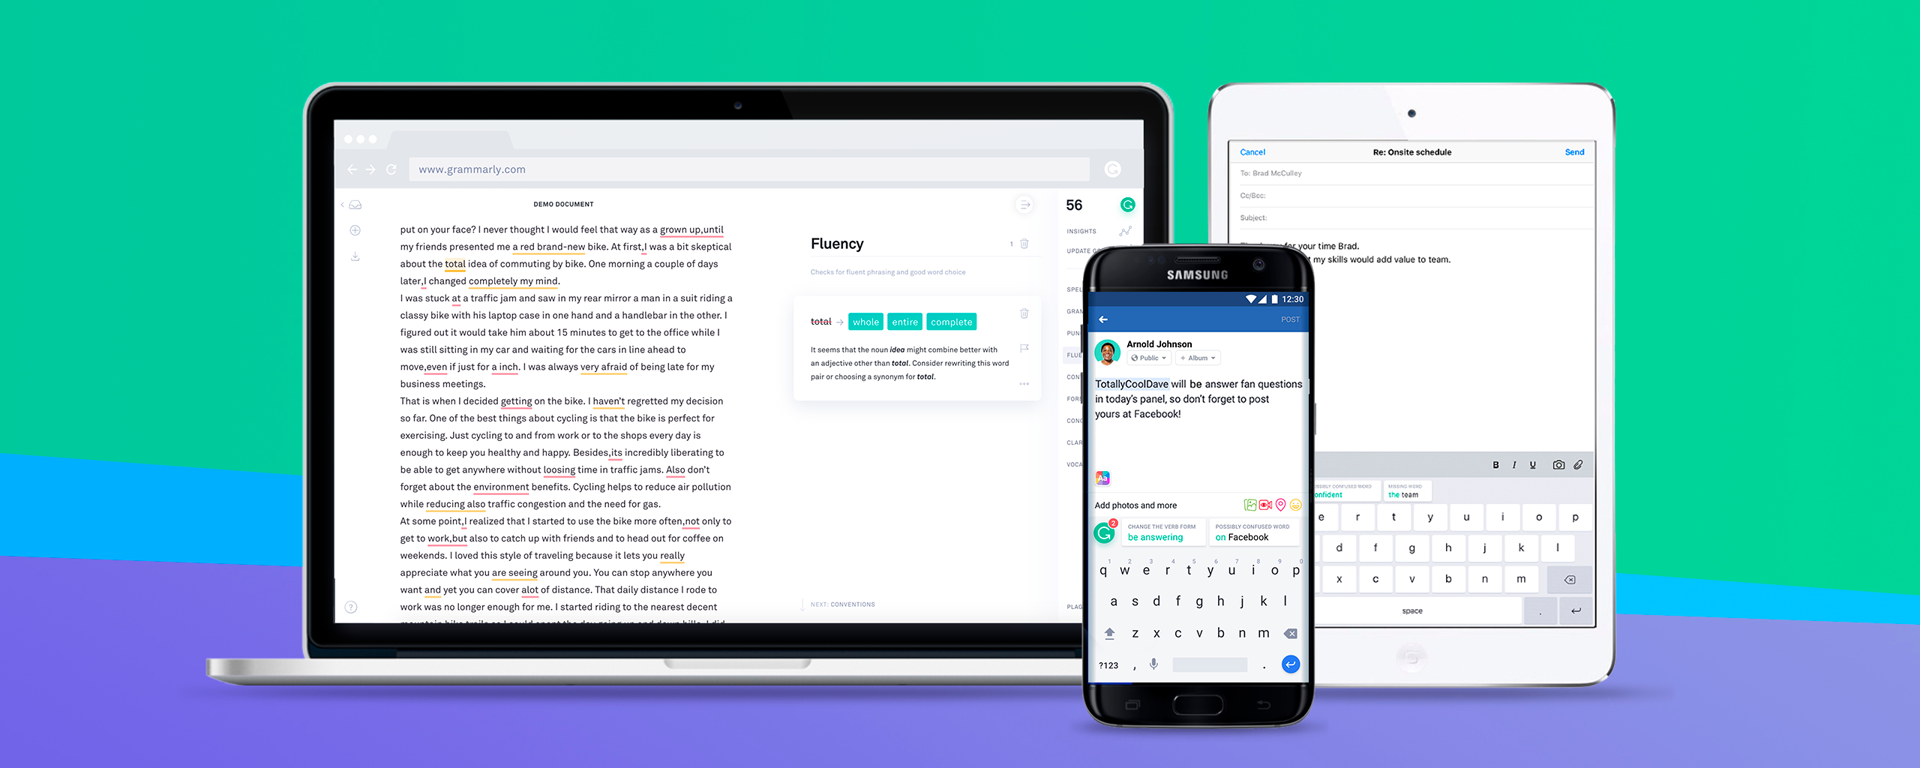 50 Percent Off Voucher Code Printable Grammarly April 2020